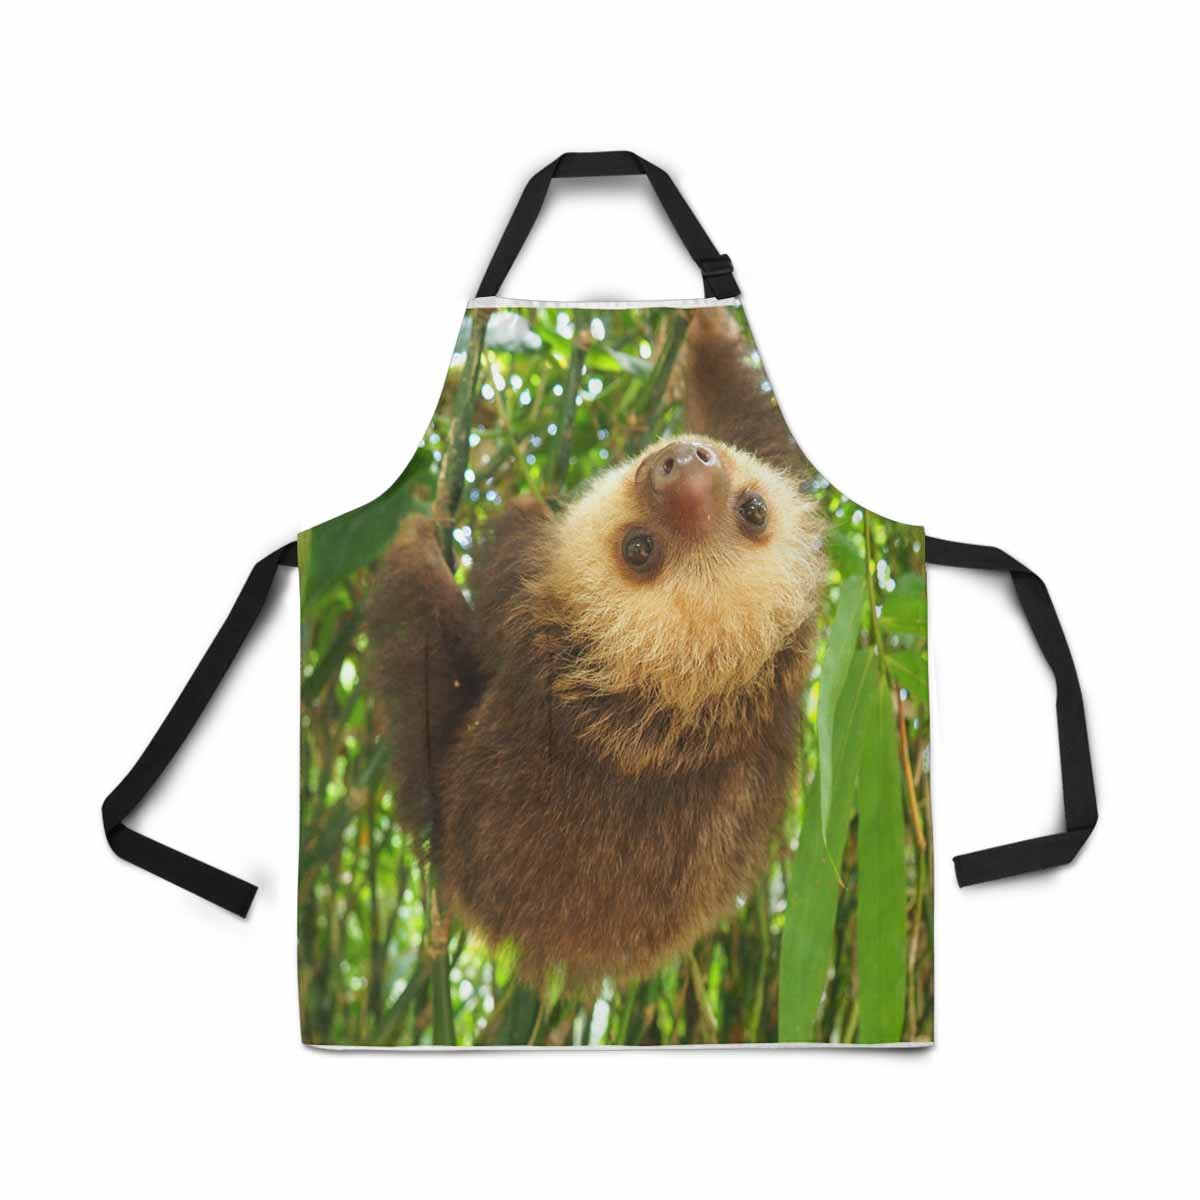 interestprint Baby Sloth Hanging In a TreeエプロンレディースメンズガールズChef withポケット、Lovely動物ユニセックス調整可能なよだれかけエプロンキッチンfor Cooking Baking Painting   B079L646S6